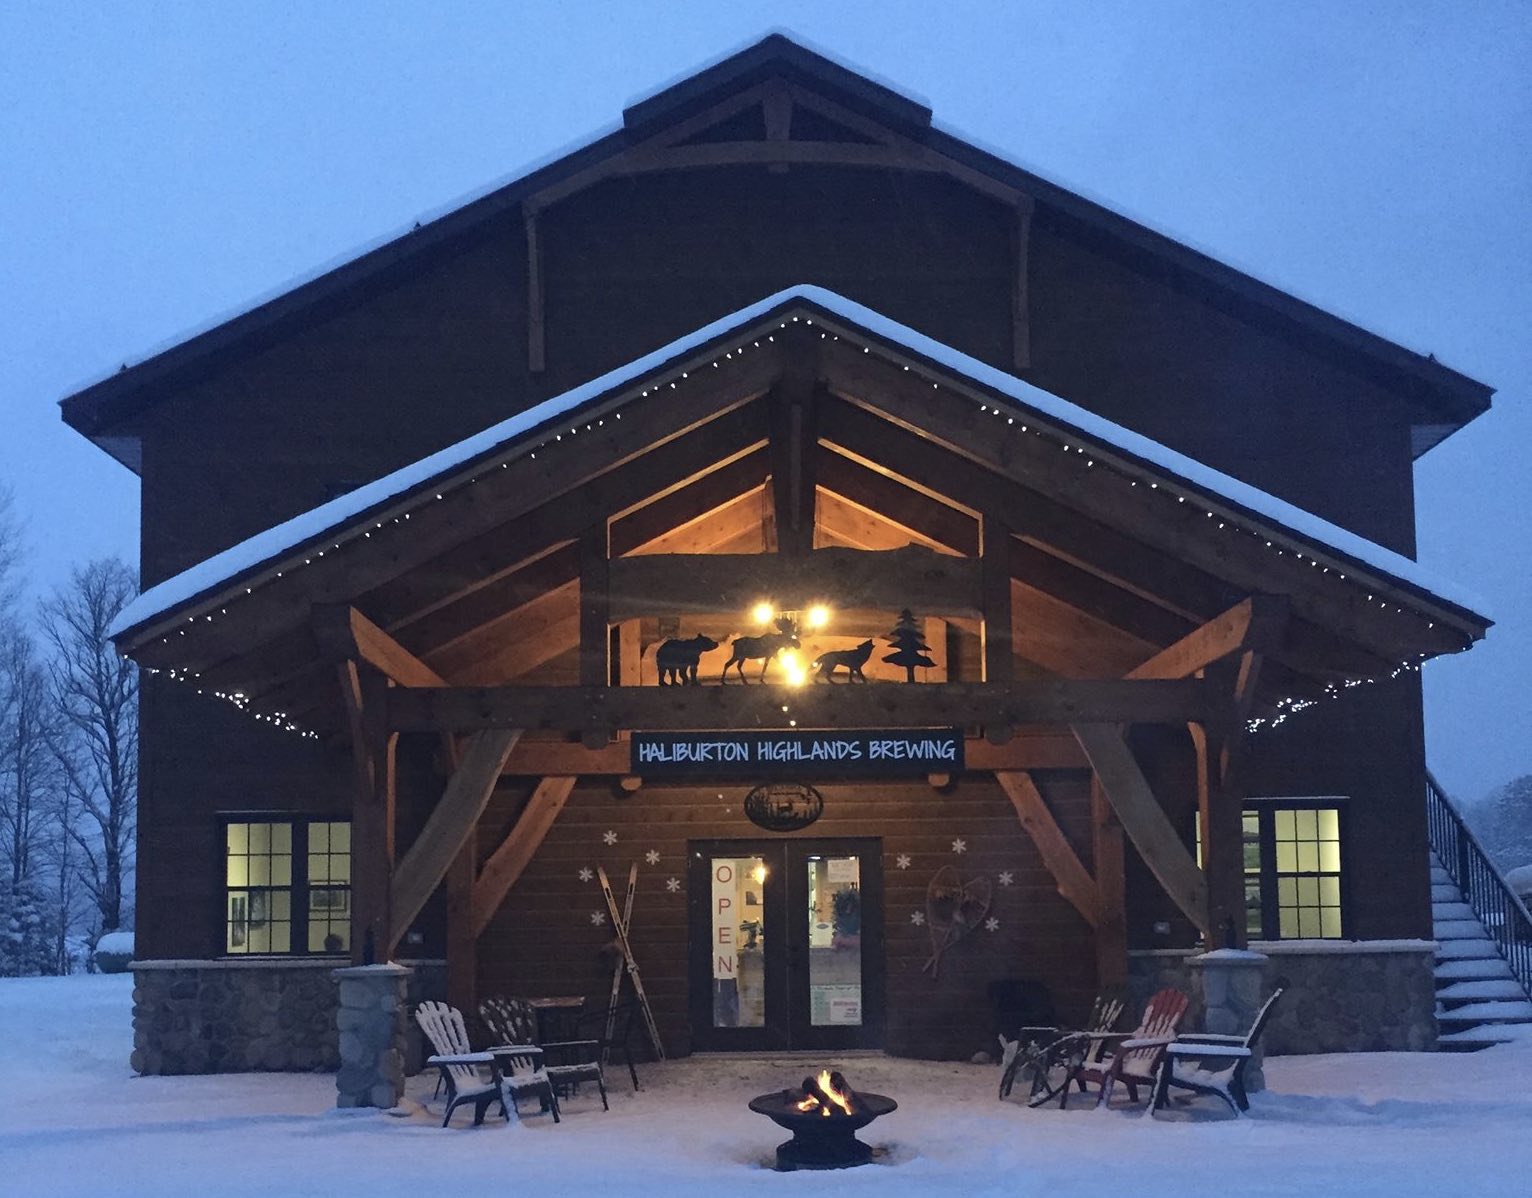 Haliburton Brewing Company's location in winter is one the best Haliburton breweries